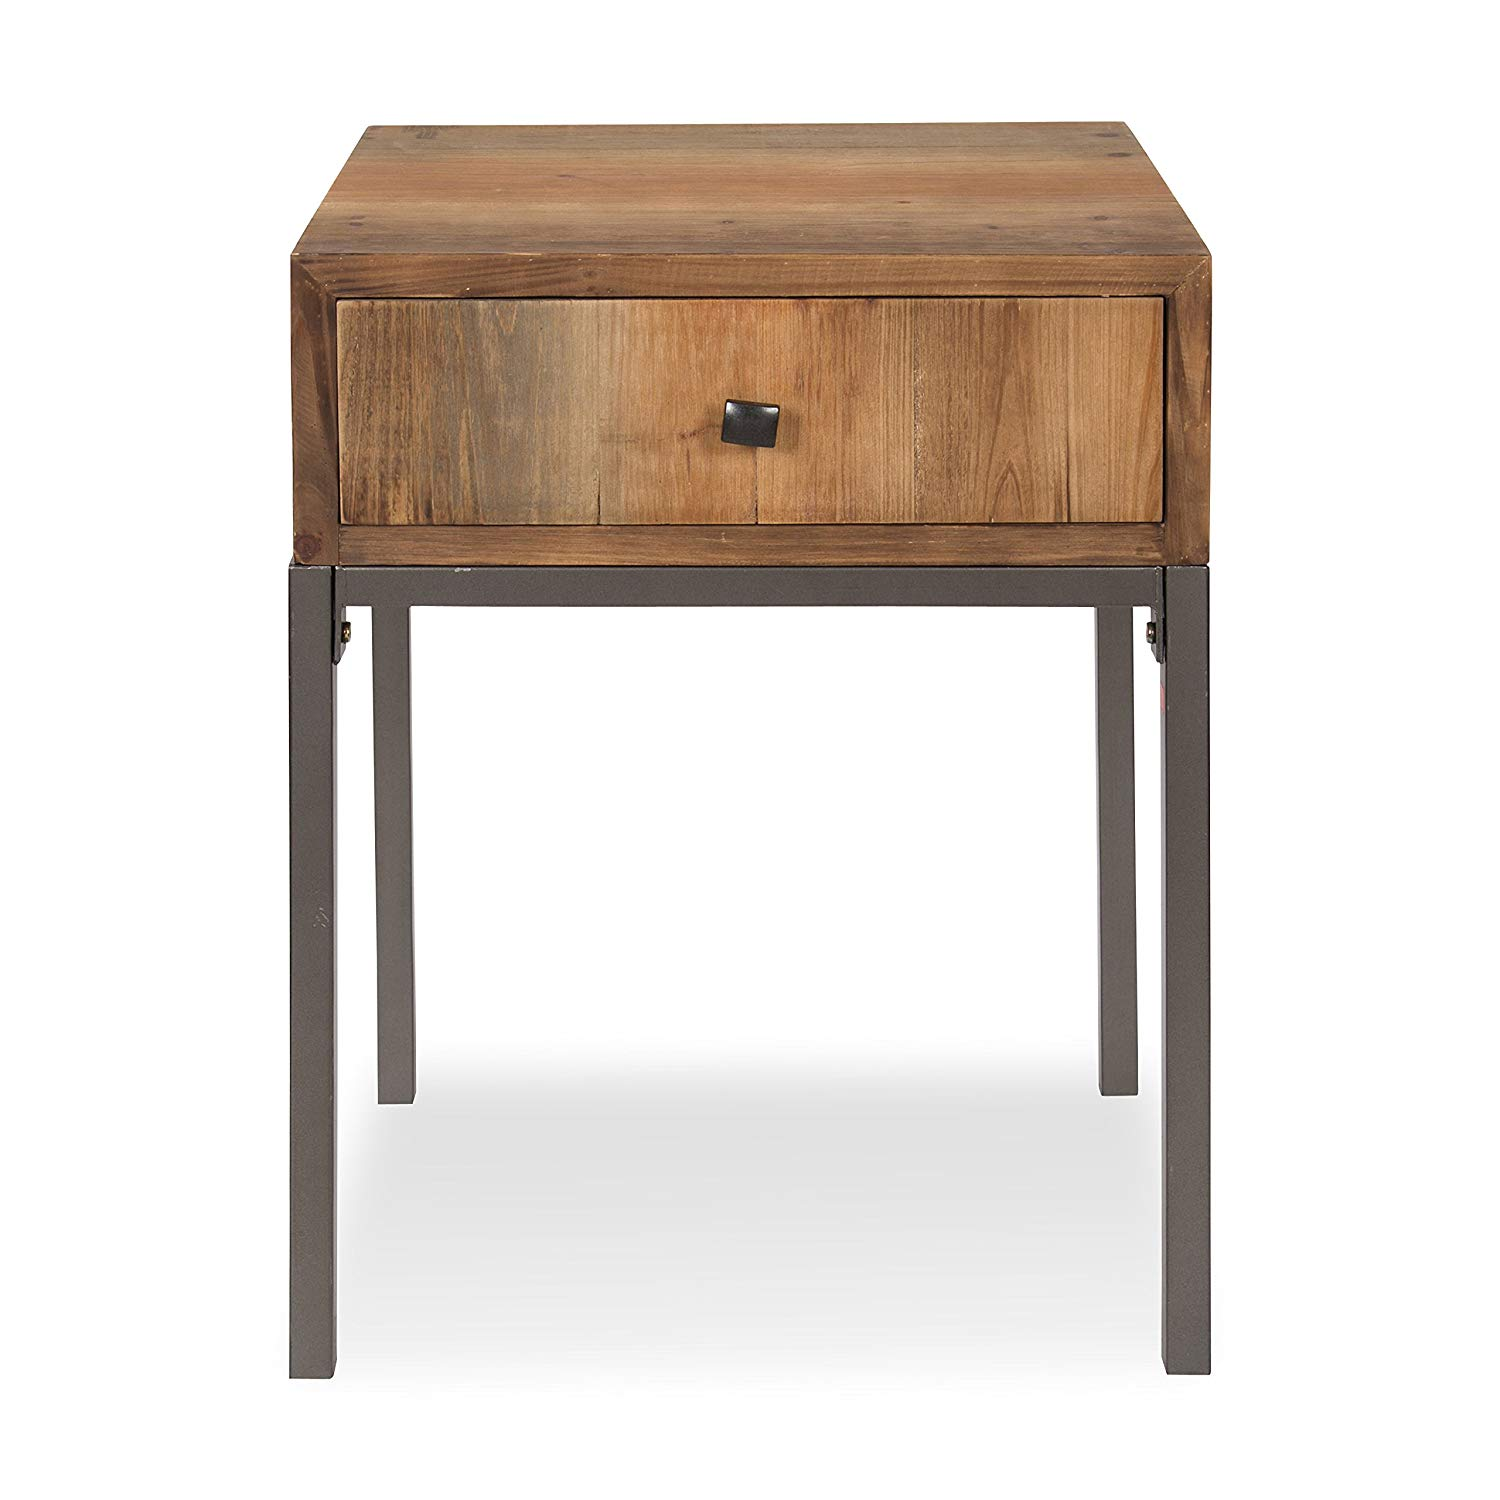 kate and laurel freya wood side accent table with drawer round rustic brown kitchen dining vintage style oak mission end pottery barn tanner coffee kmart console stained glass